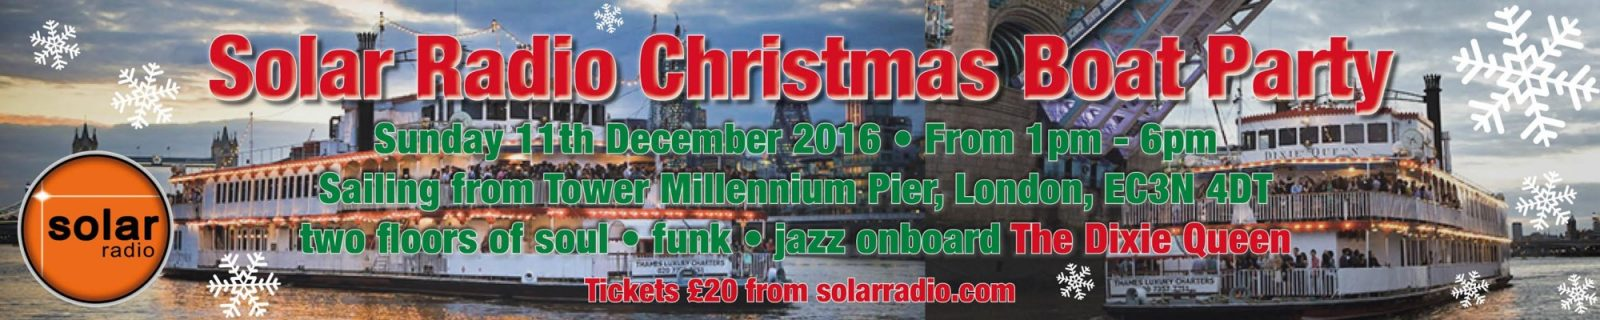 Christmas Soul Boat Party